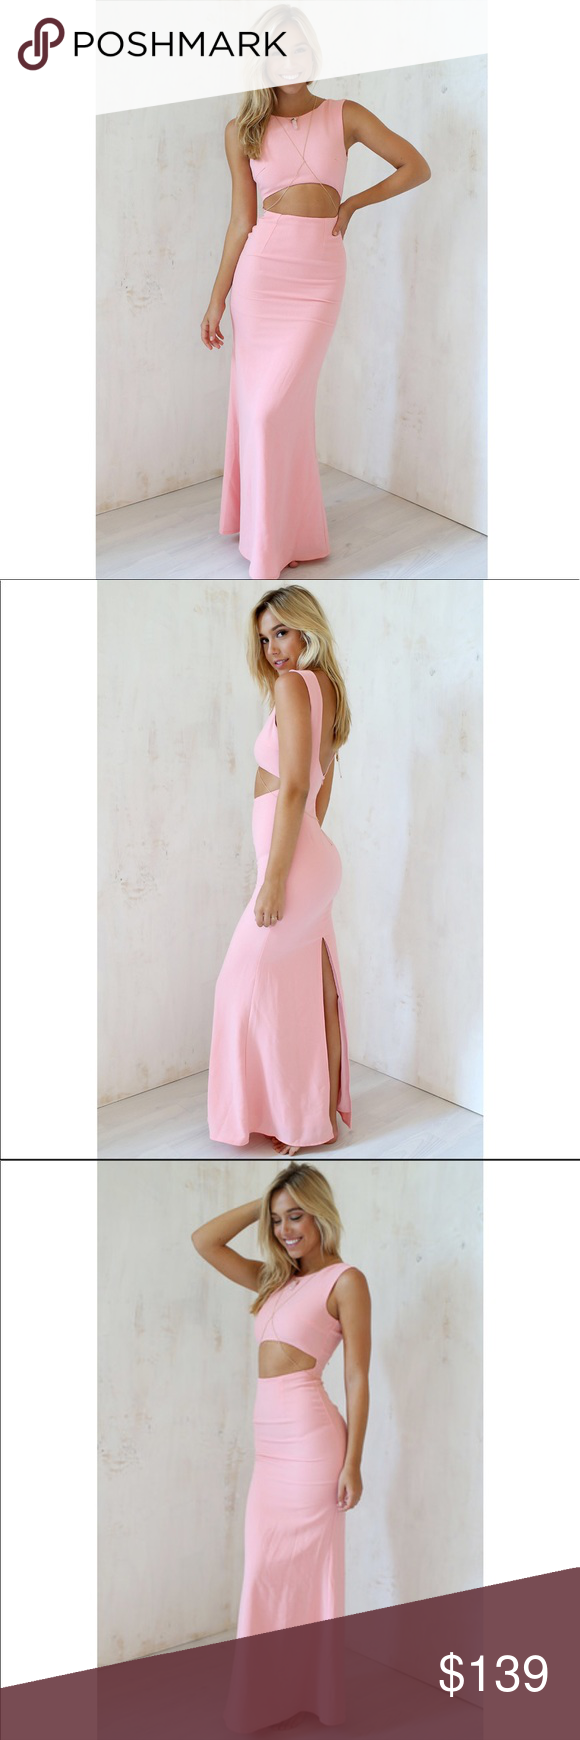 f306ef3691 Spotted while shopping on Poshmark: Sabo Skirt Pink Blush Leader Maxi  Formal Gown! #poshmark #fashion #shopping #style #Sabo Skirt #Dresses &  Skirts